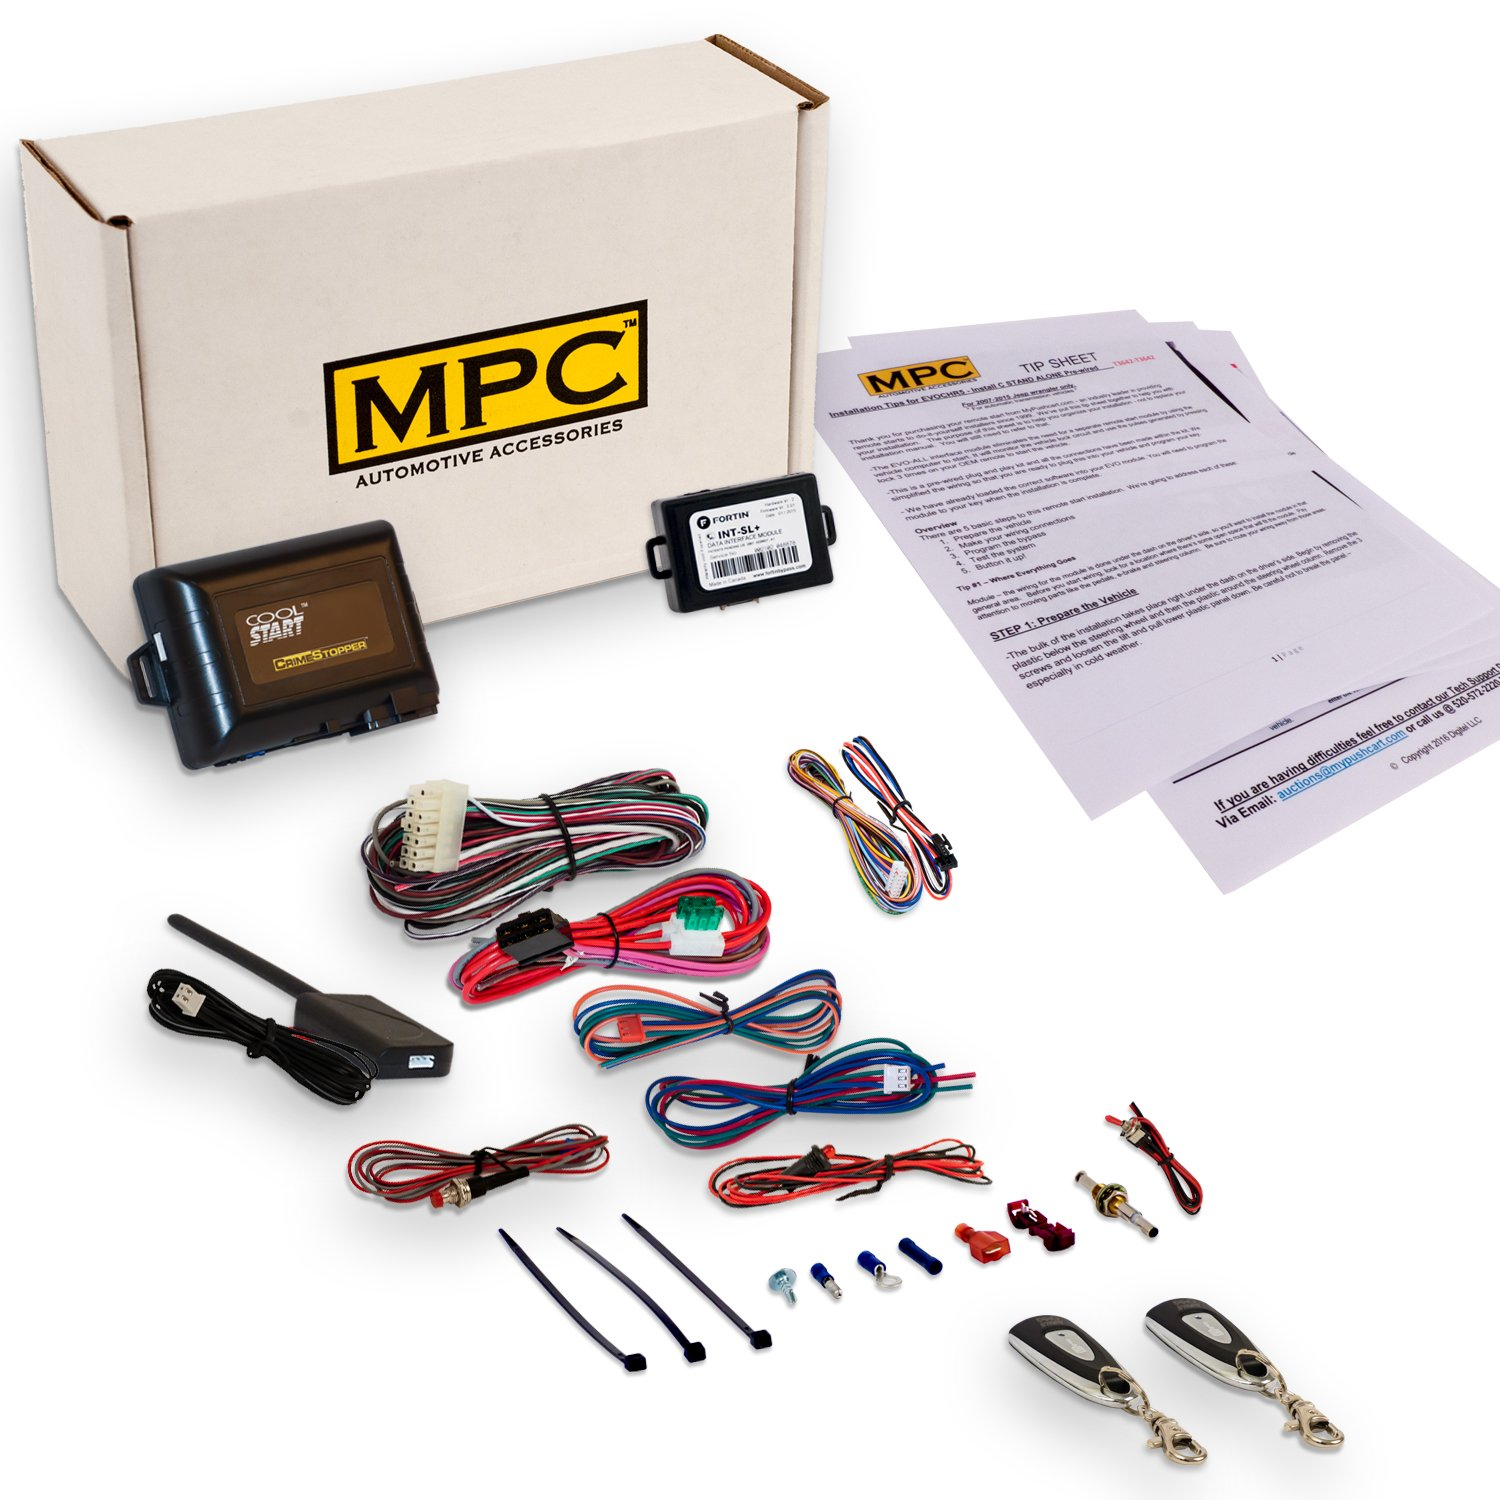 MPC Complete 1-Button Extended Range Remote Start Kit and Keyless Entry For 2005-2007 Jeep Liberty - Firmware Preloaded